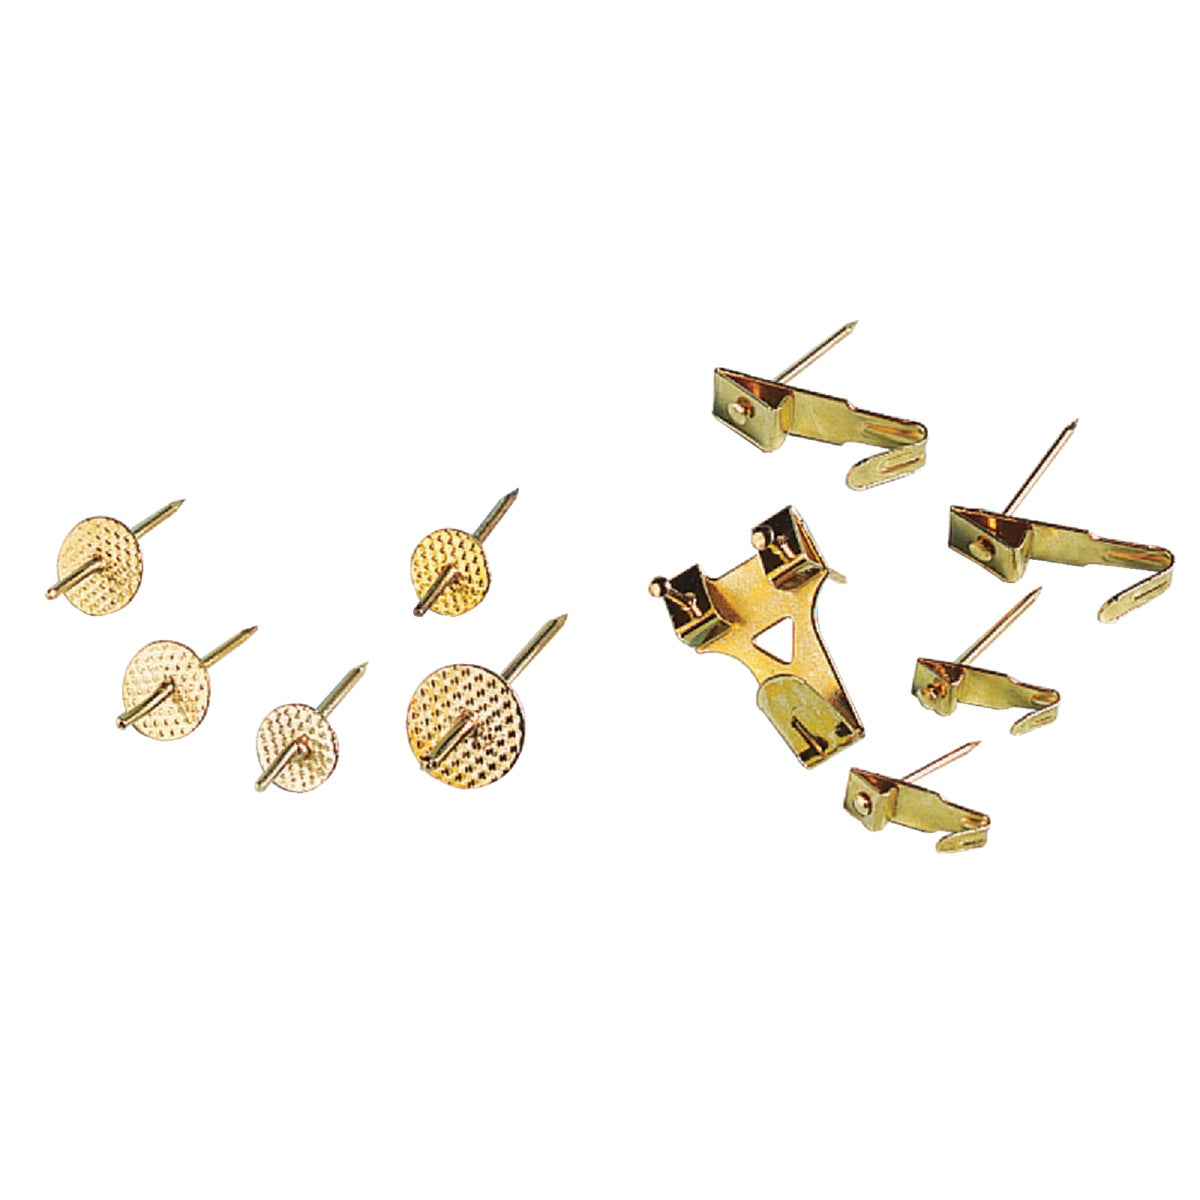 ASSORTED E-Z HANGERS - 122188 by Hillman Fastener